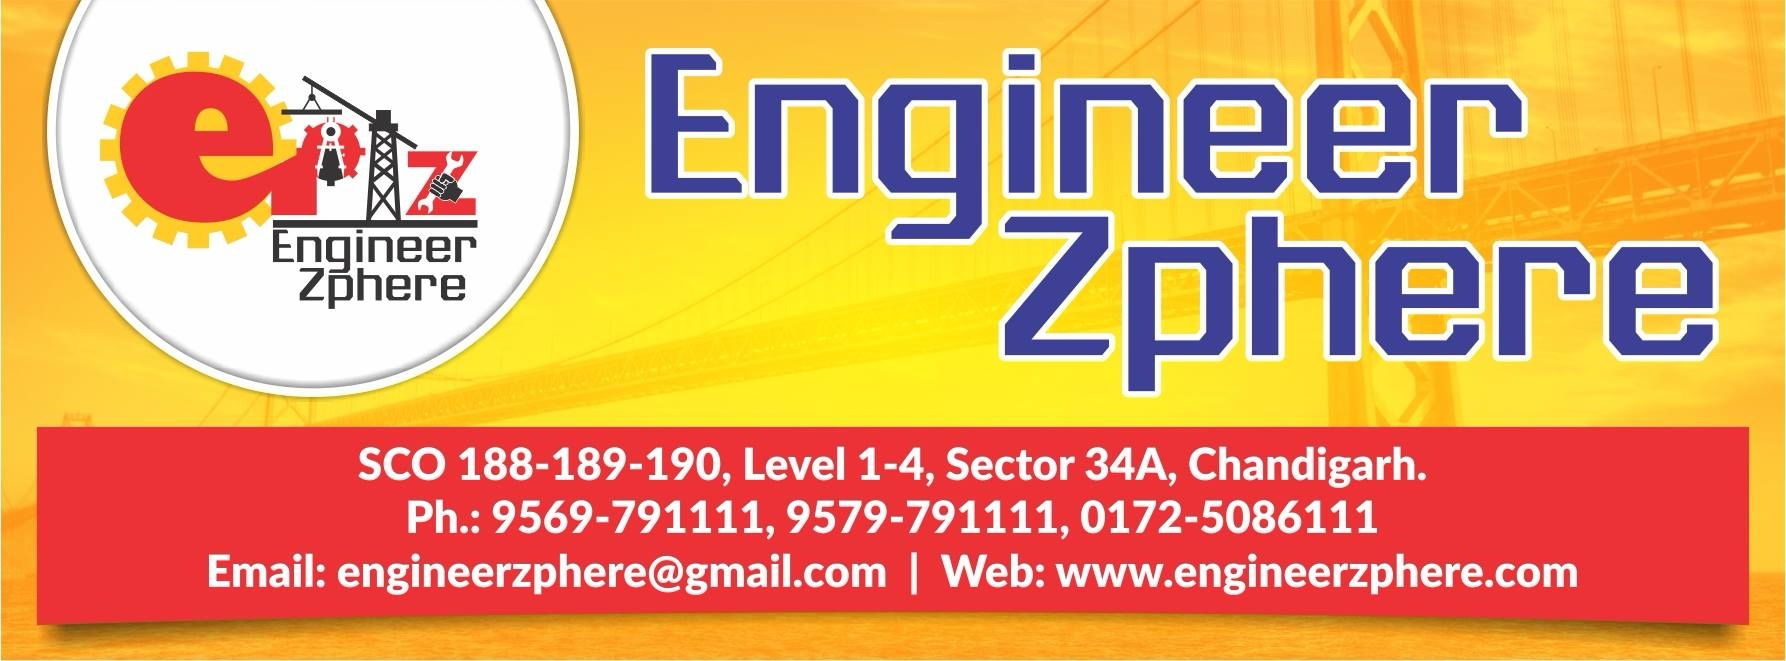 Engineerzphere - Gate & SSC JE Coaching Center (@engineerzphere) Cover Image